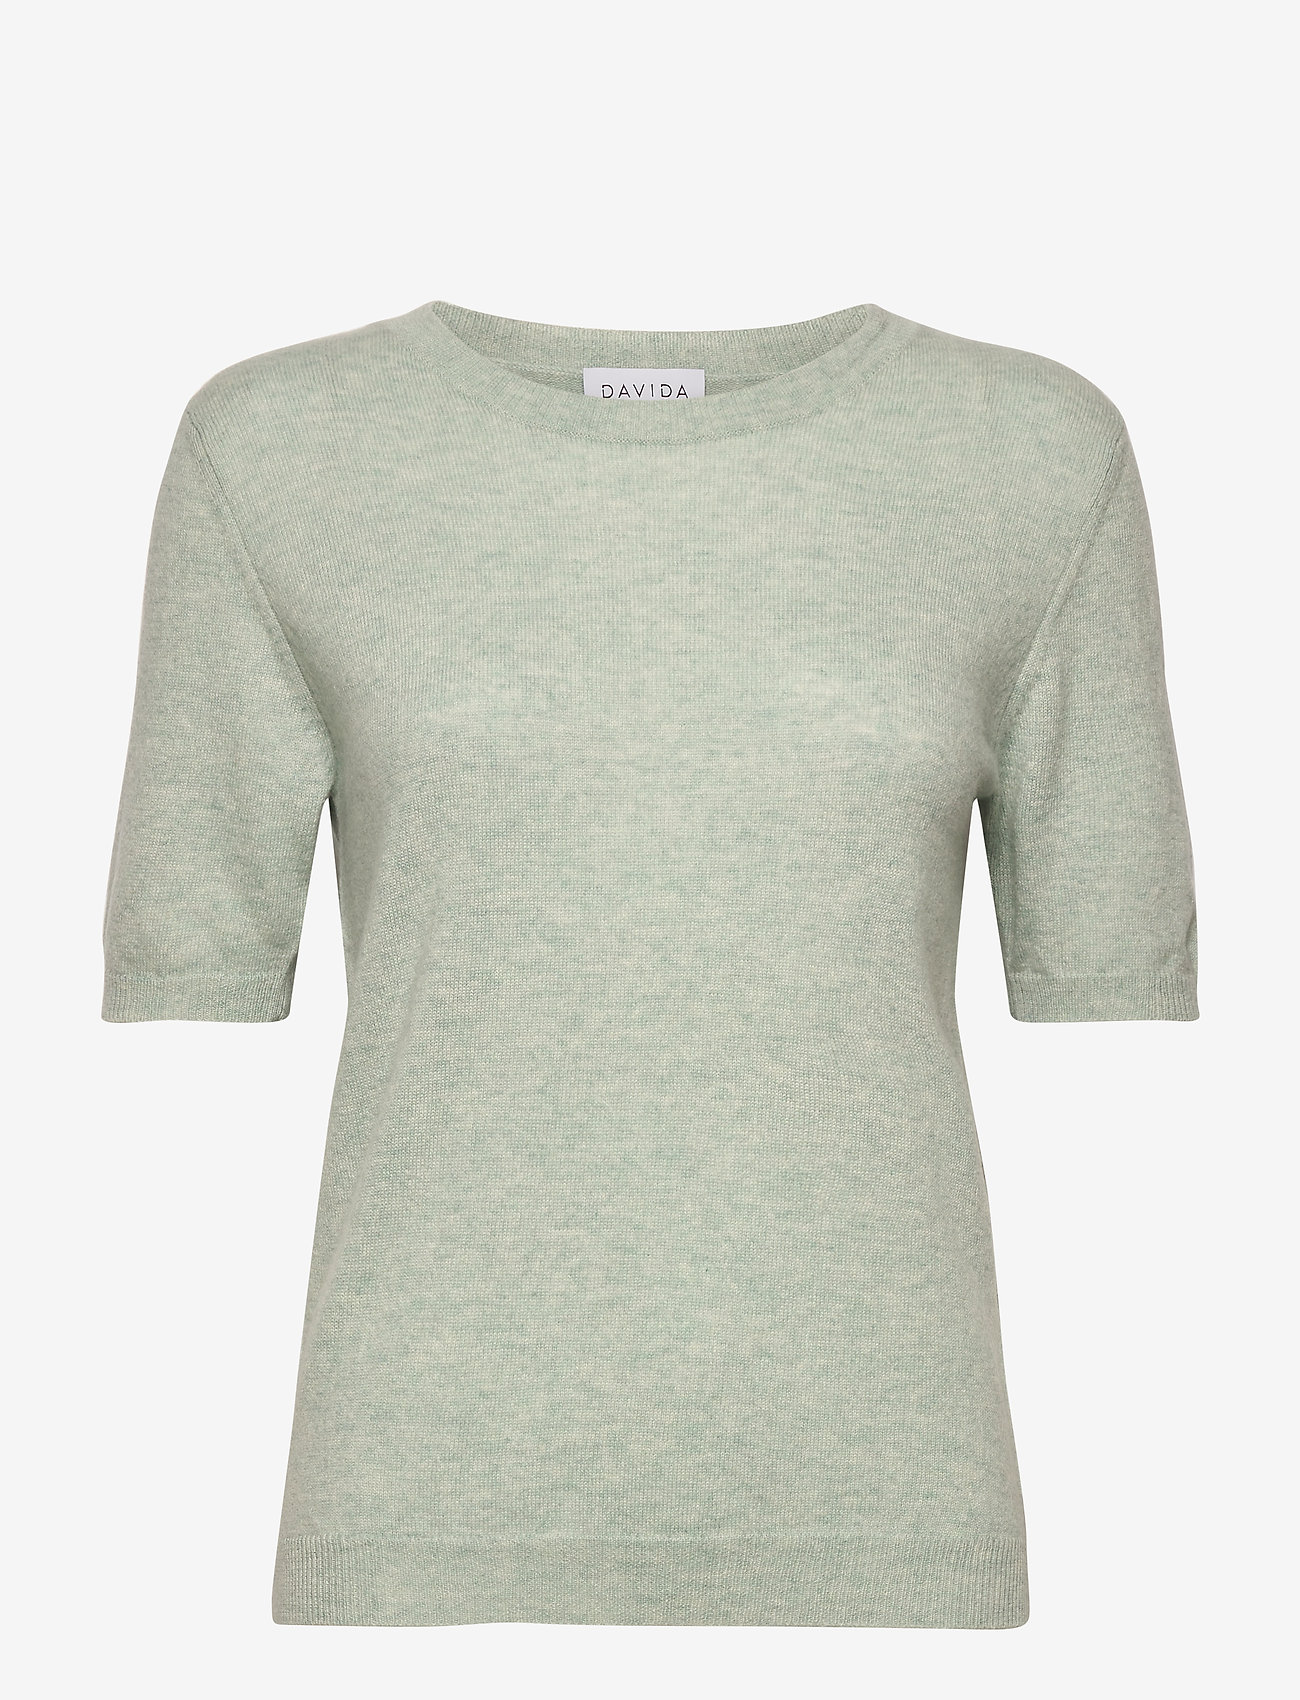 Davida Cashmere - T-shirt Oversized - gebreide t-shirts - light green - 0